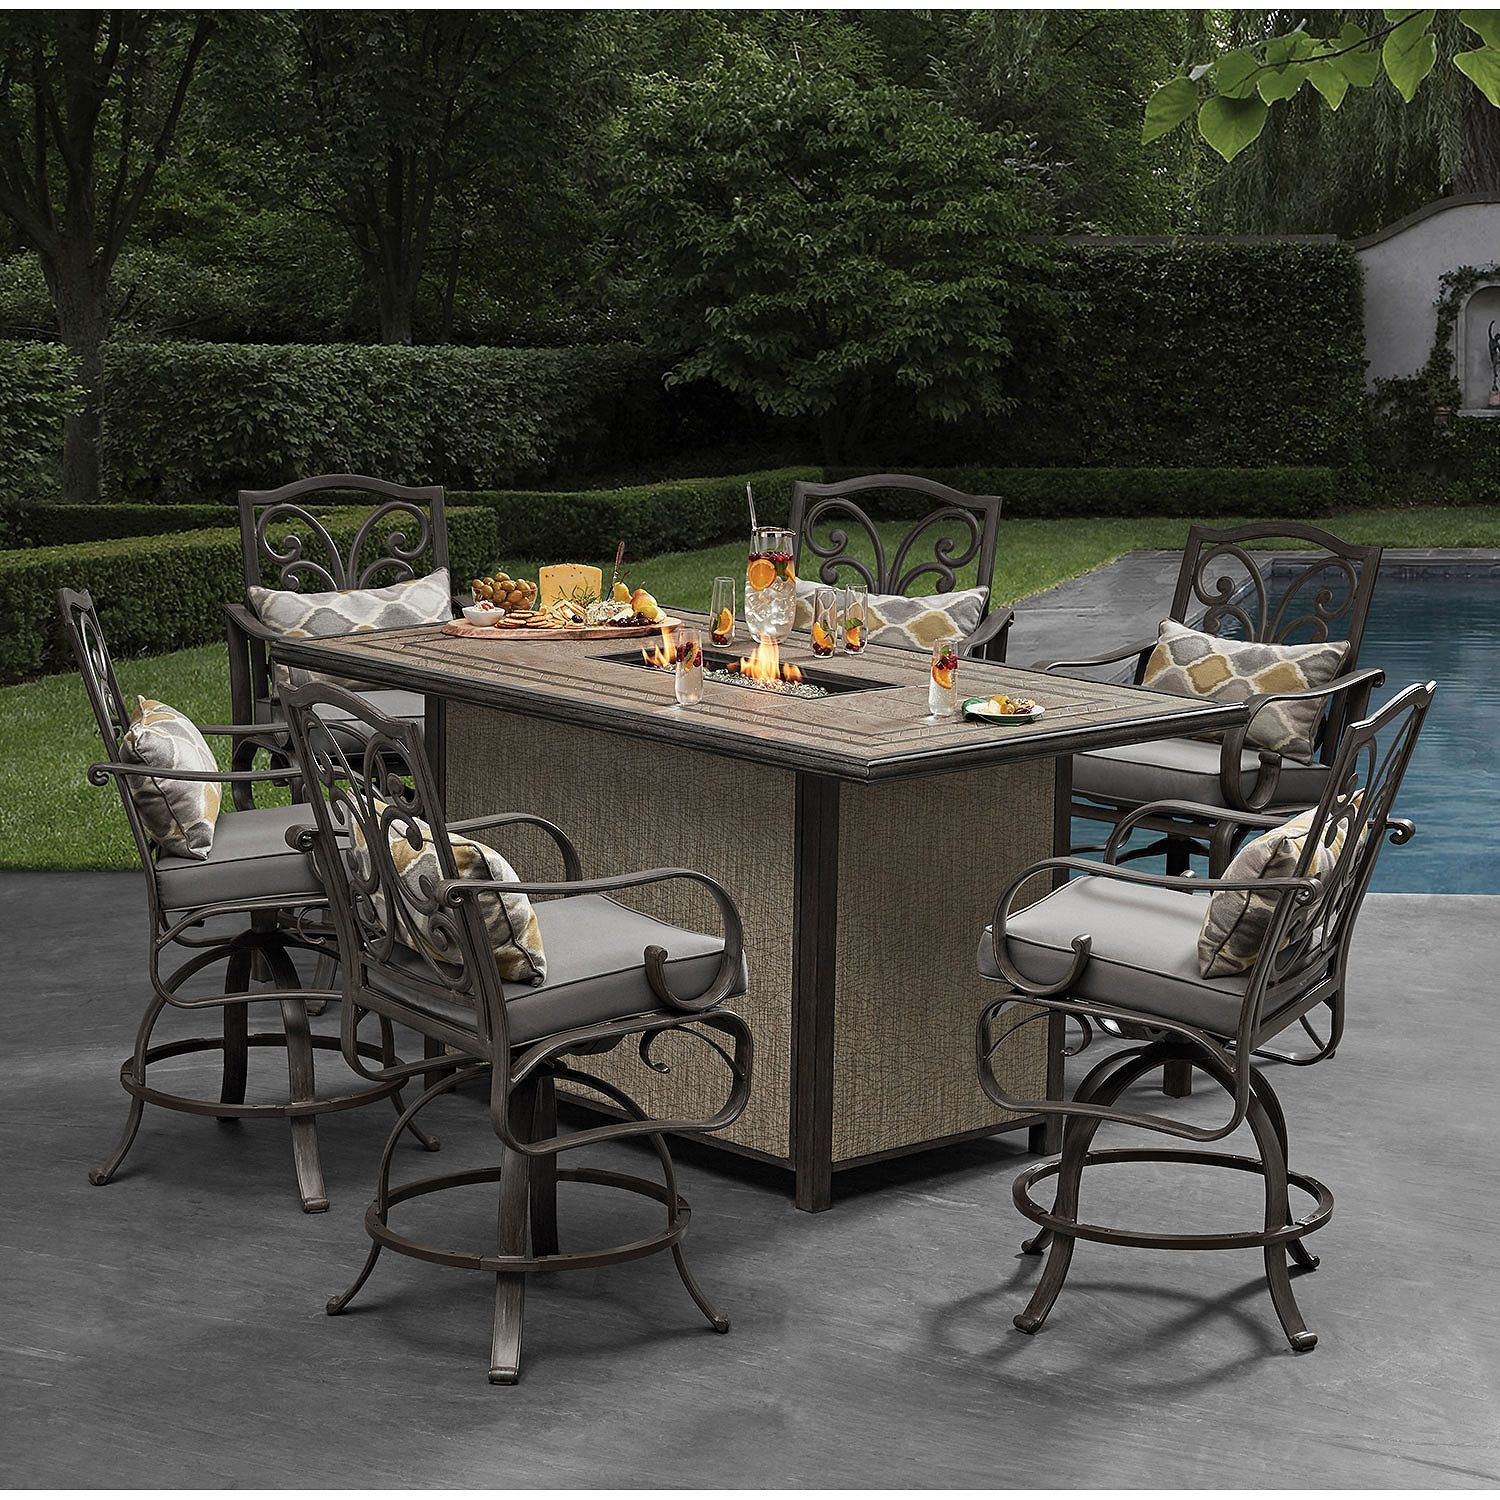 Bar Height Patio Furniture Sams Club Patio Ideas Bar Height